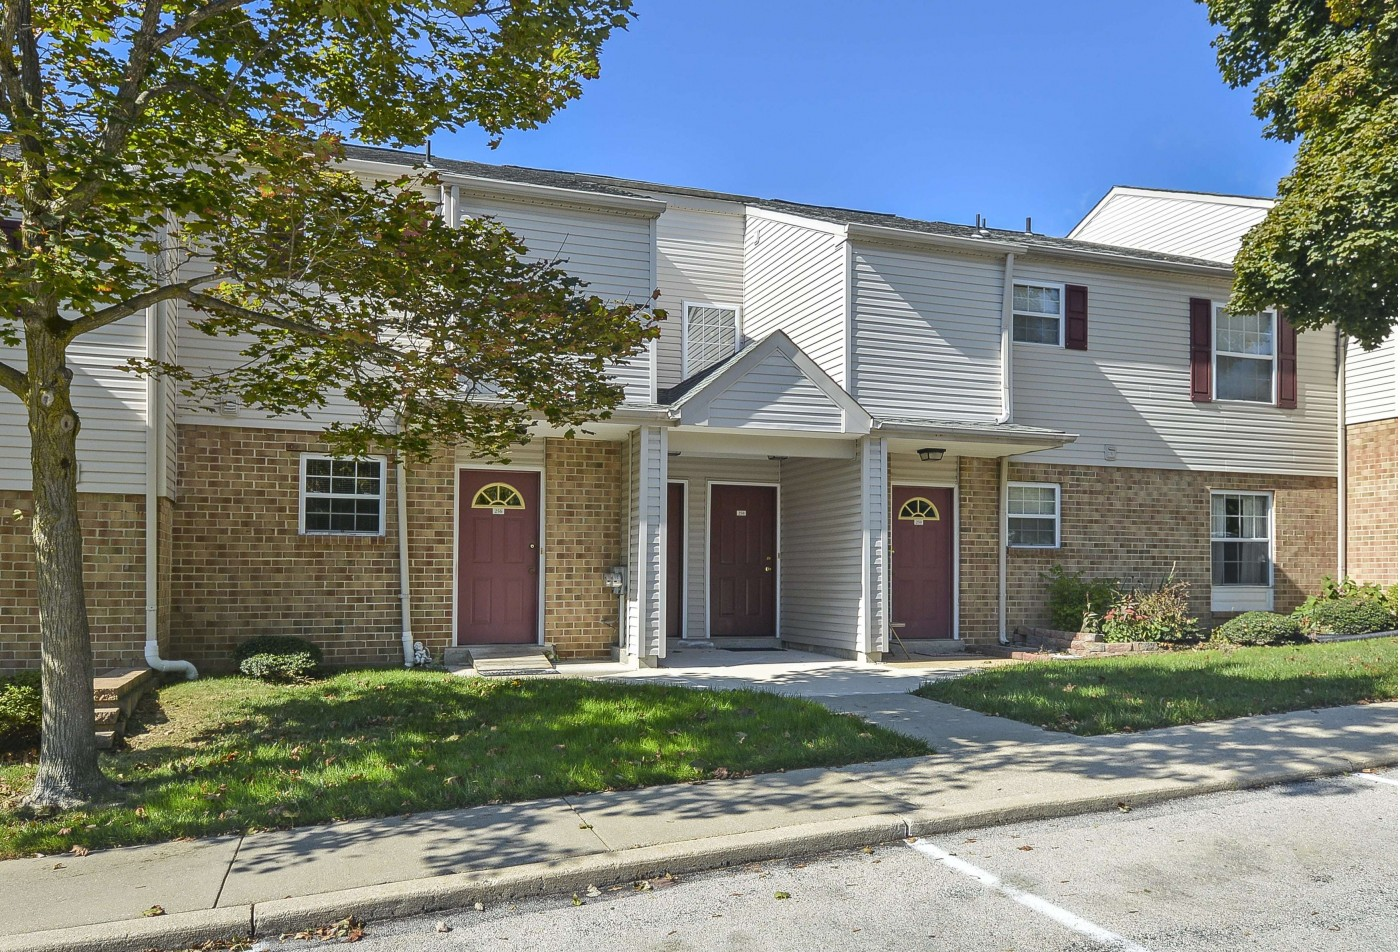 Swimming Pool | Apartment Homes in West Chester, PA | Wyntre Brooke Apartments